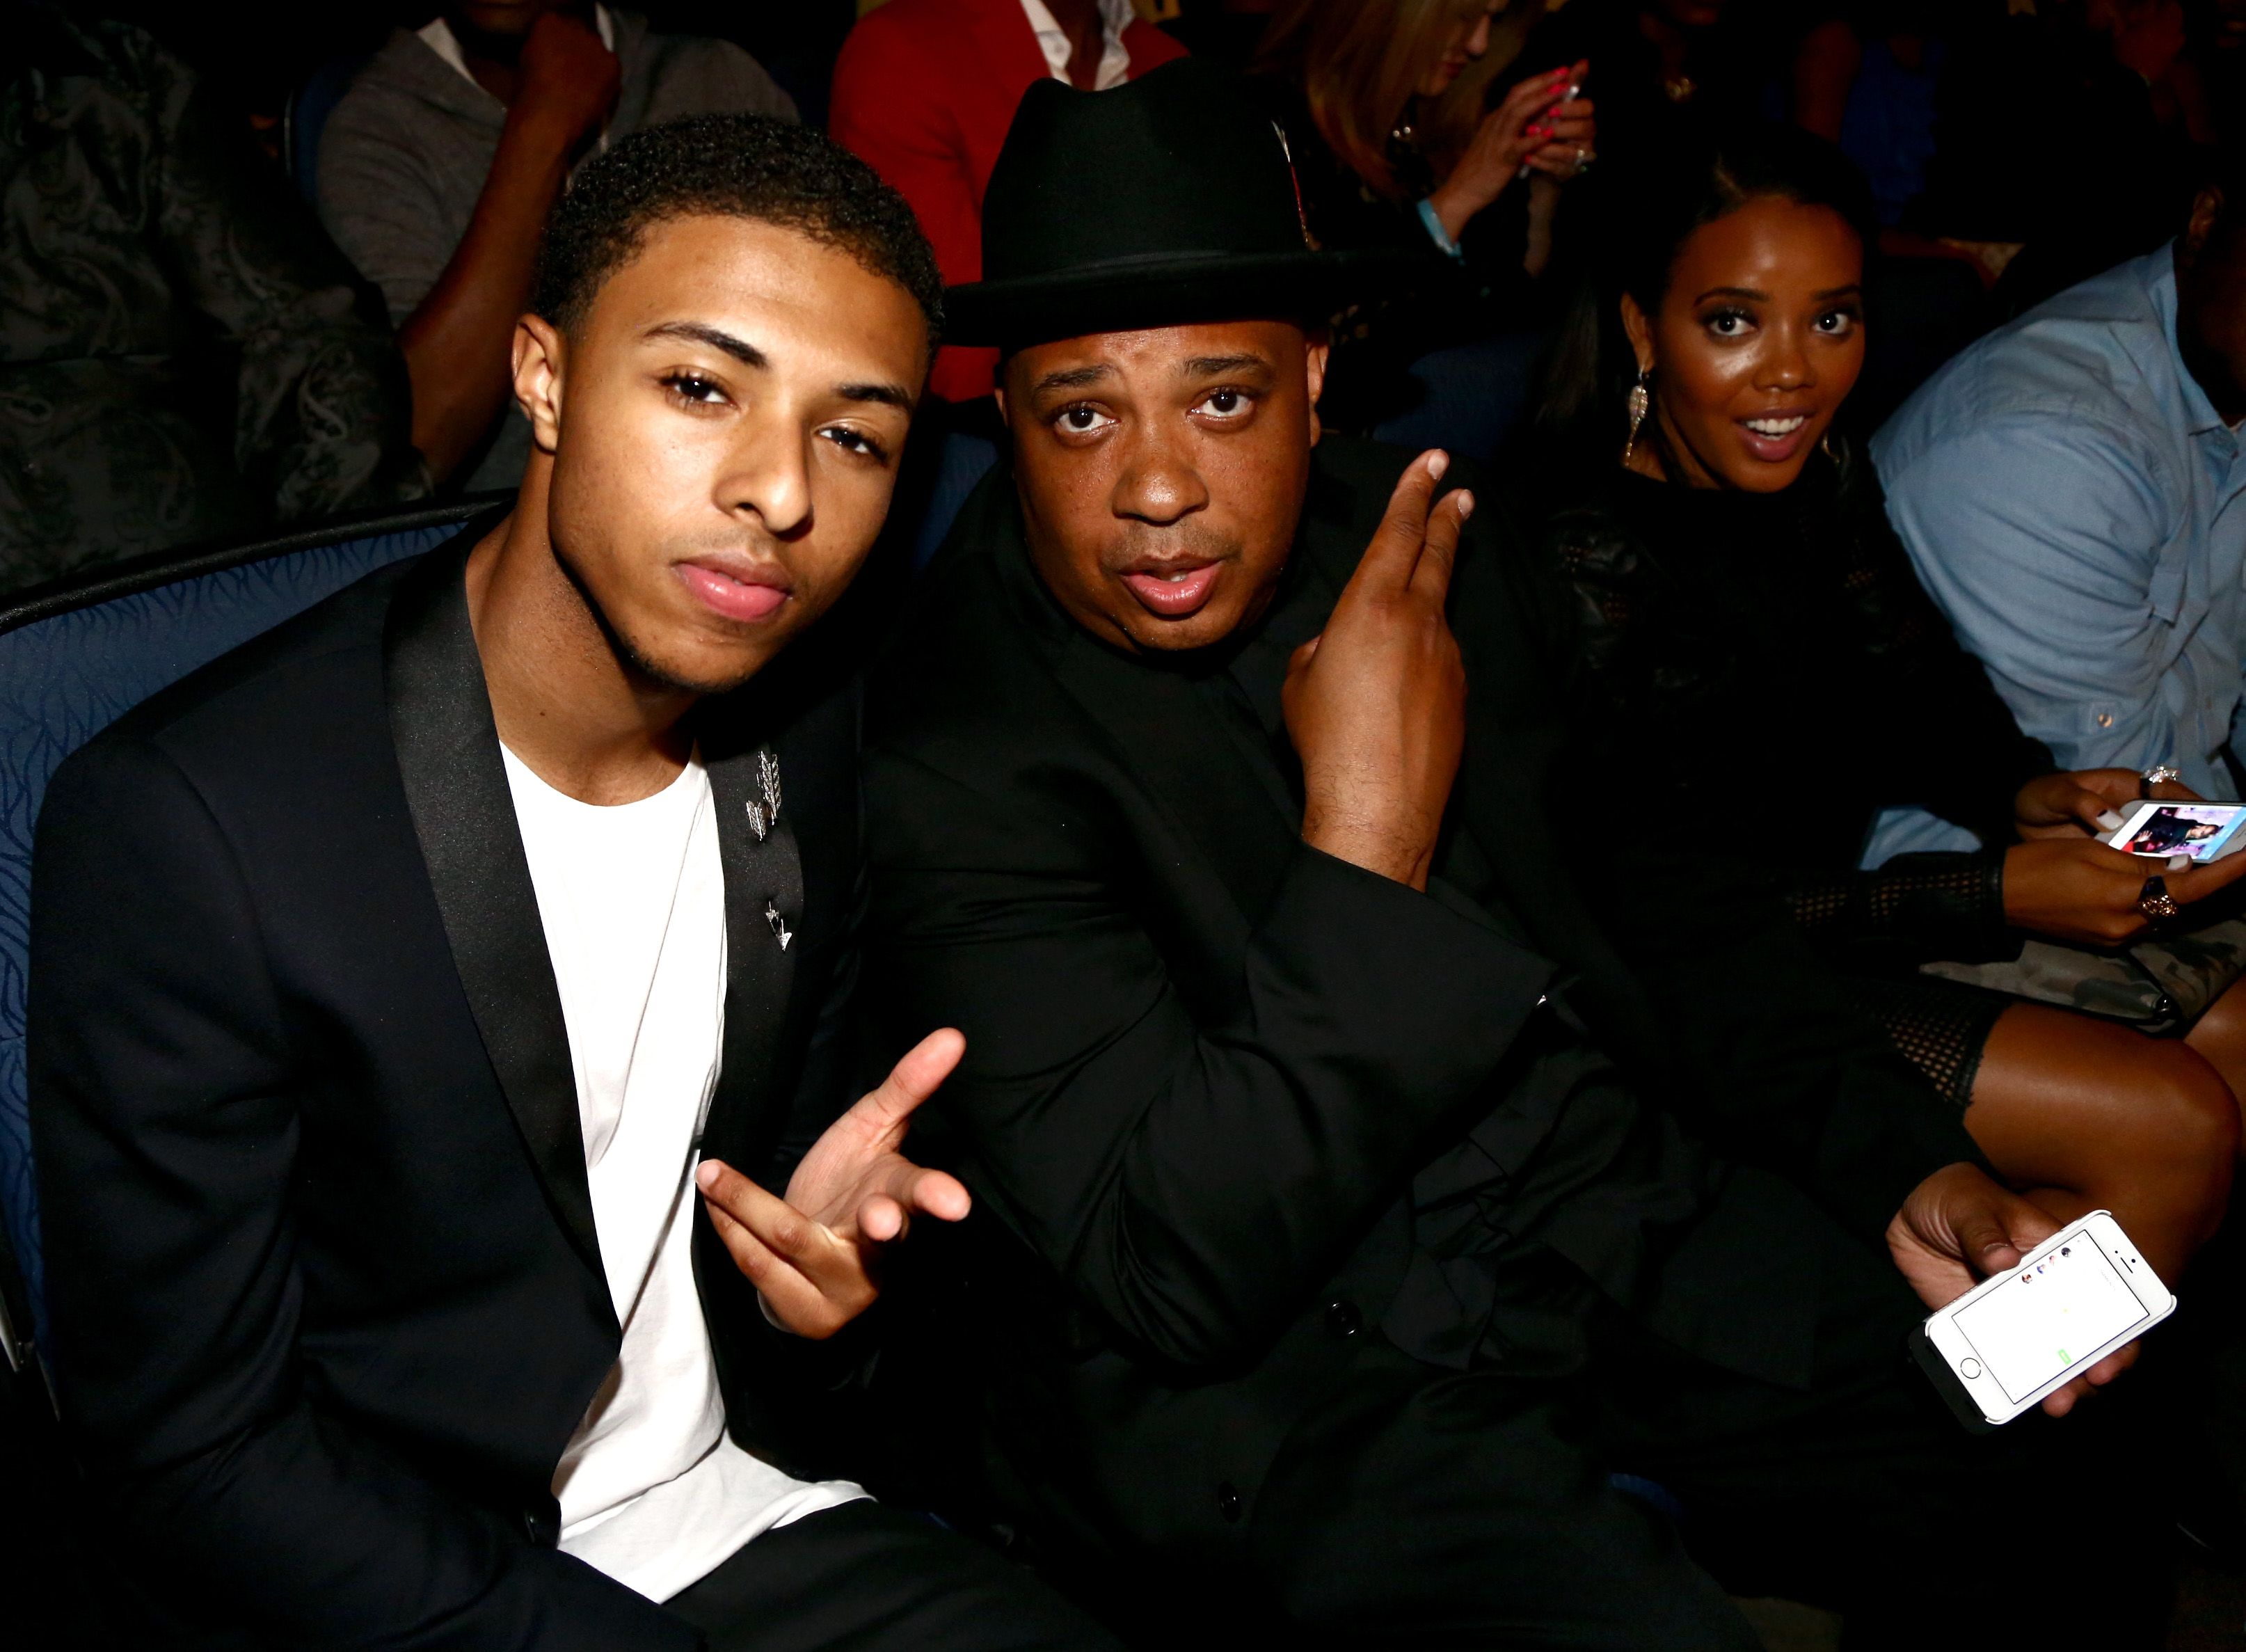 Diggy Simmons and Rev Run at the BET Awards in 2014 in Los Angeles | Source: Getty Images